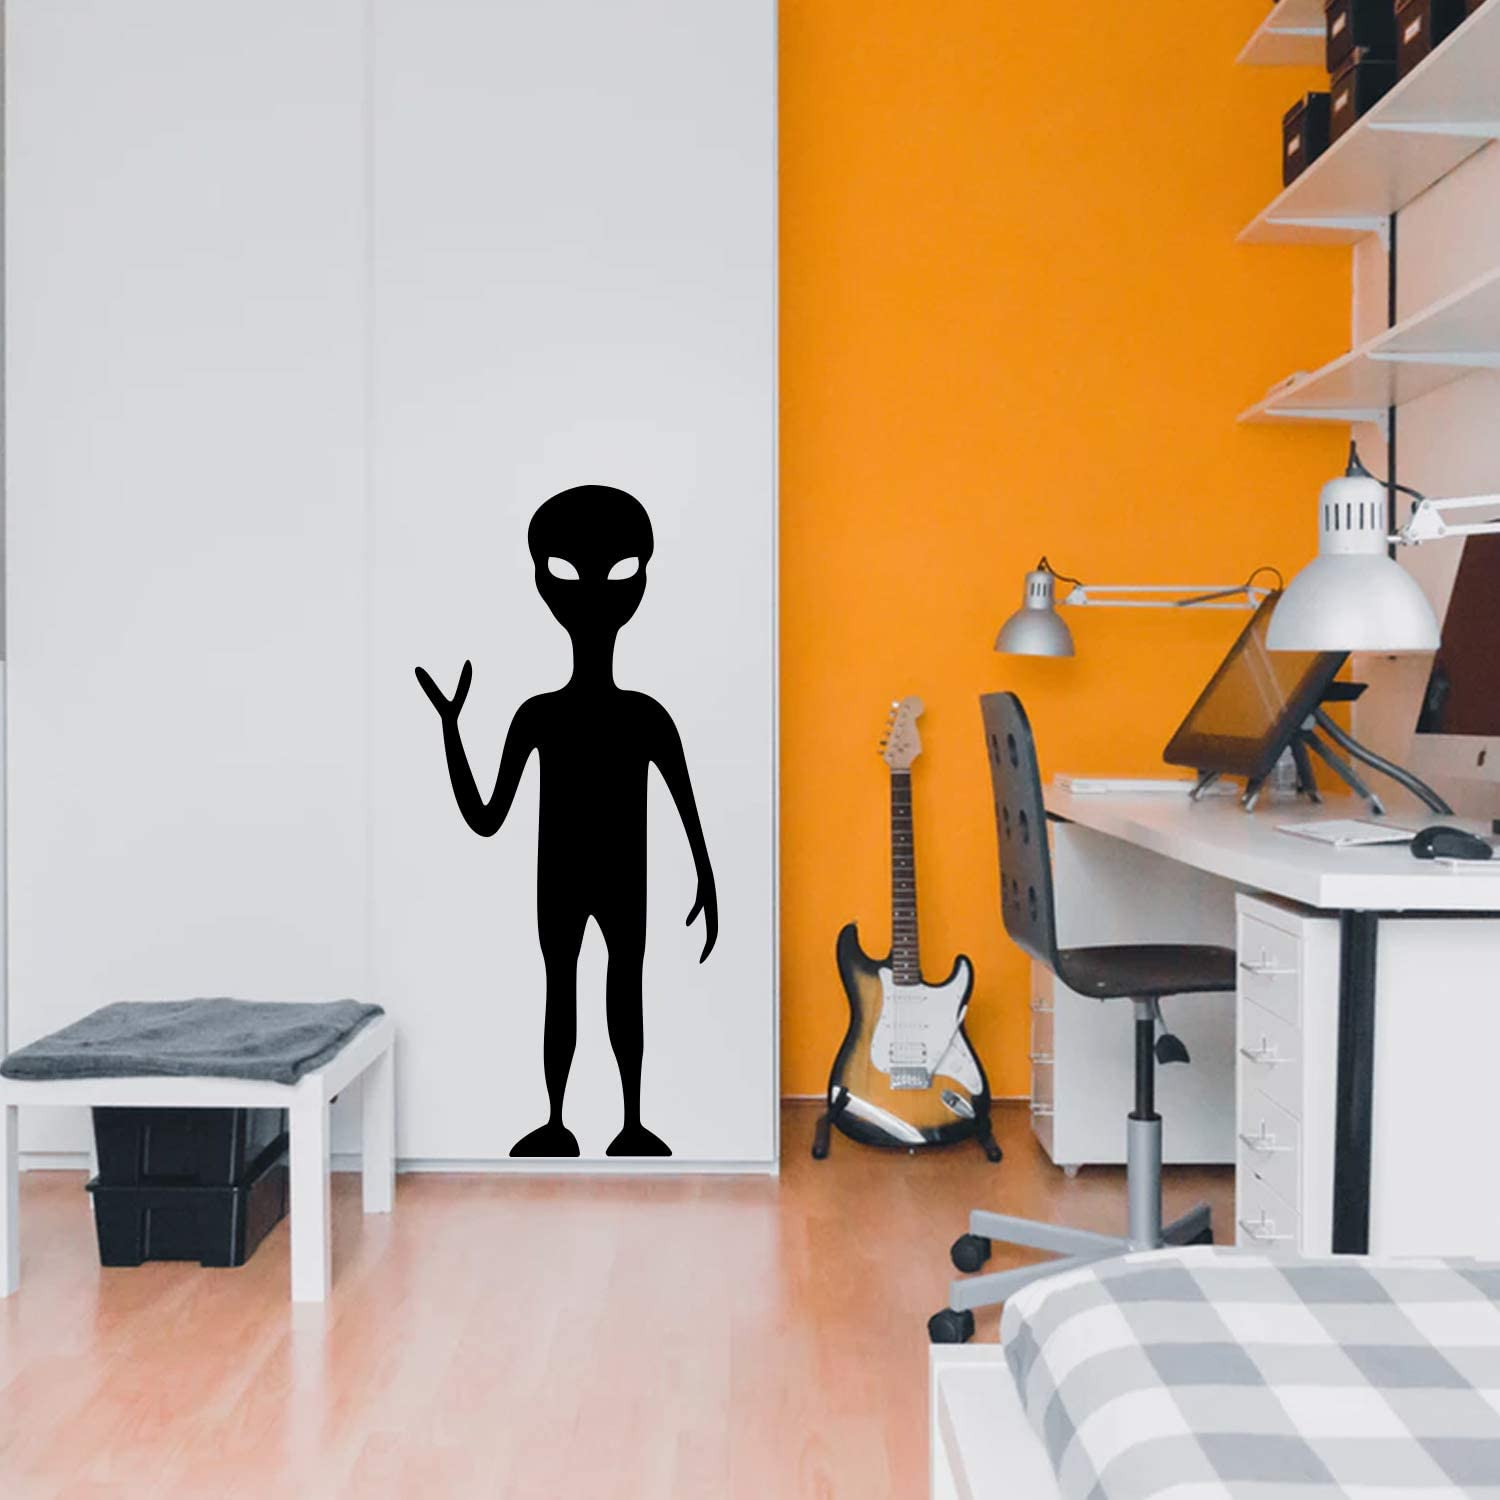 """Vinyl Wall Art Decal - Tall Alien - 48"""" x 22"""" - Modern Cool Decor for Home Bedroom Playroom Wall Door - Unisex Trendy Sci Fi Outer Space UFO Apartment Living Room Decor (48"""" x 22"""", Black)"""